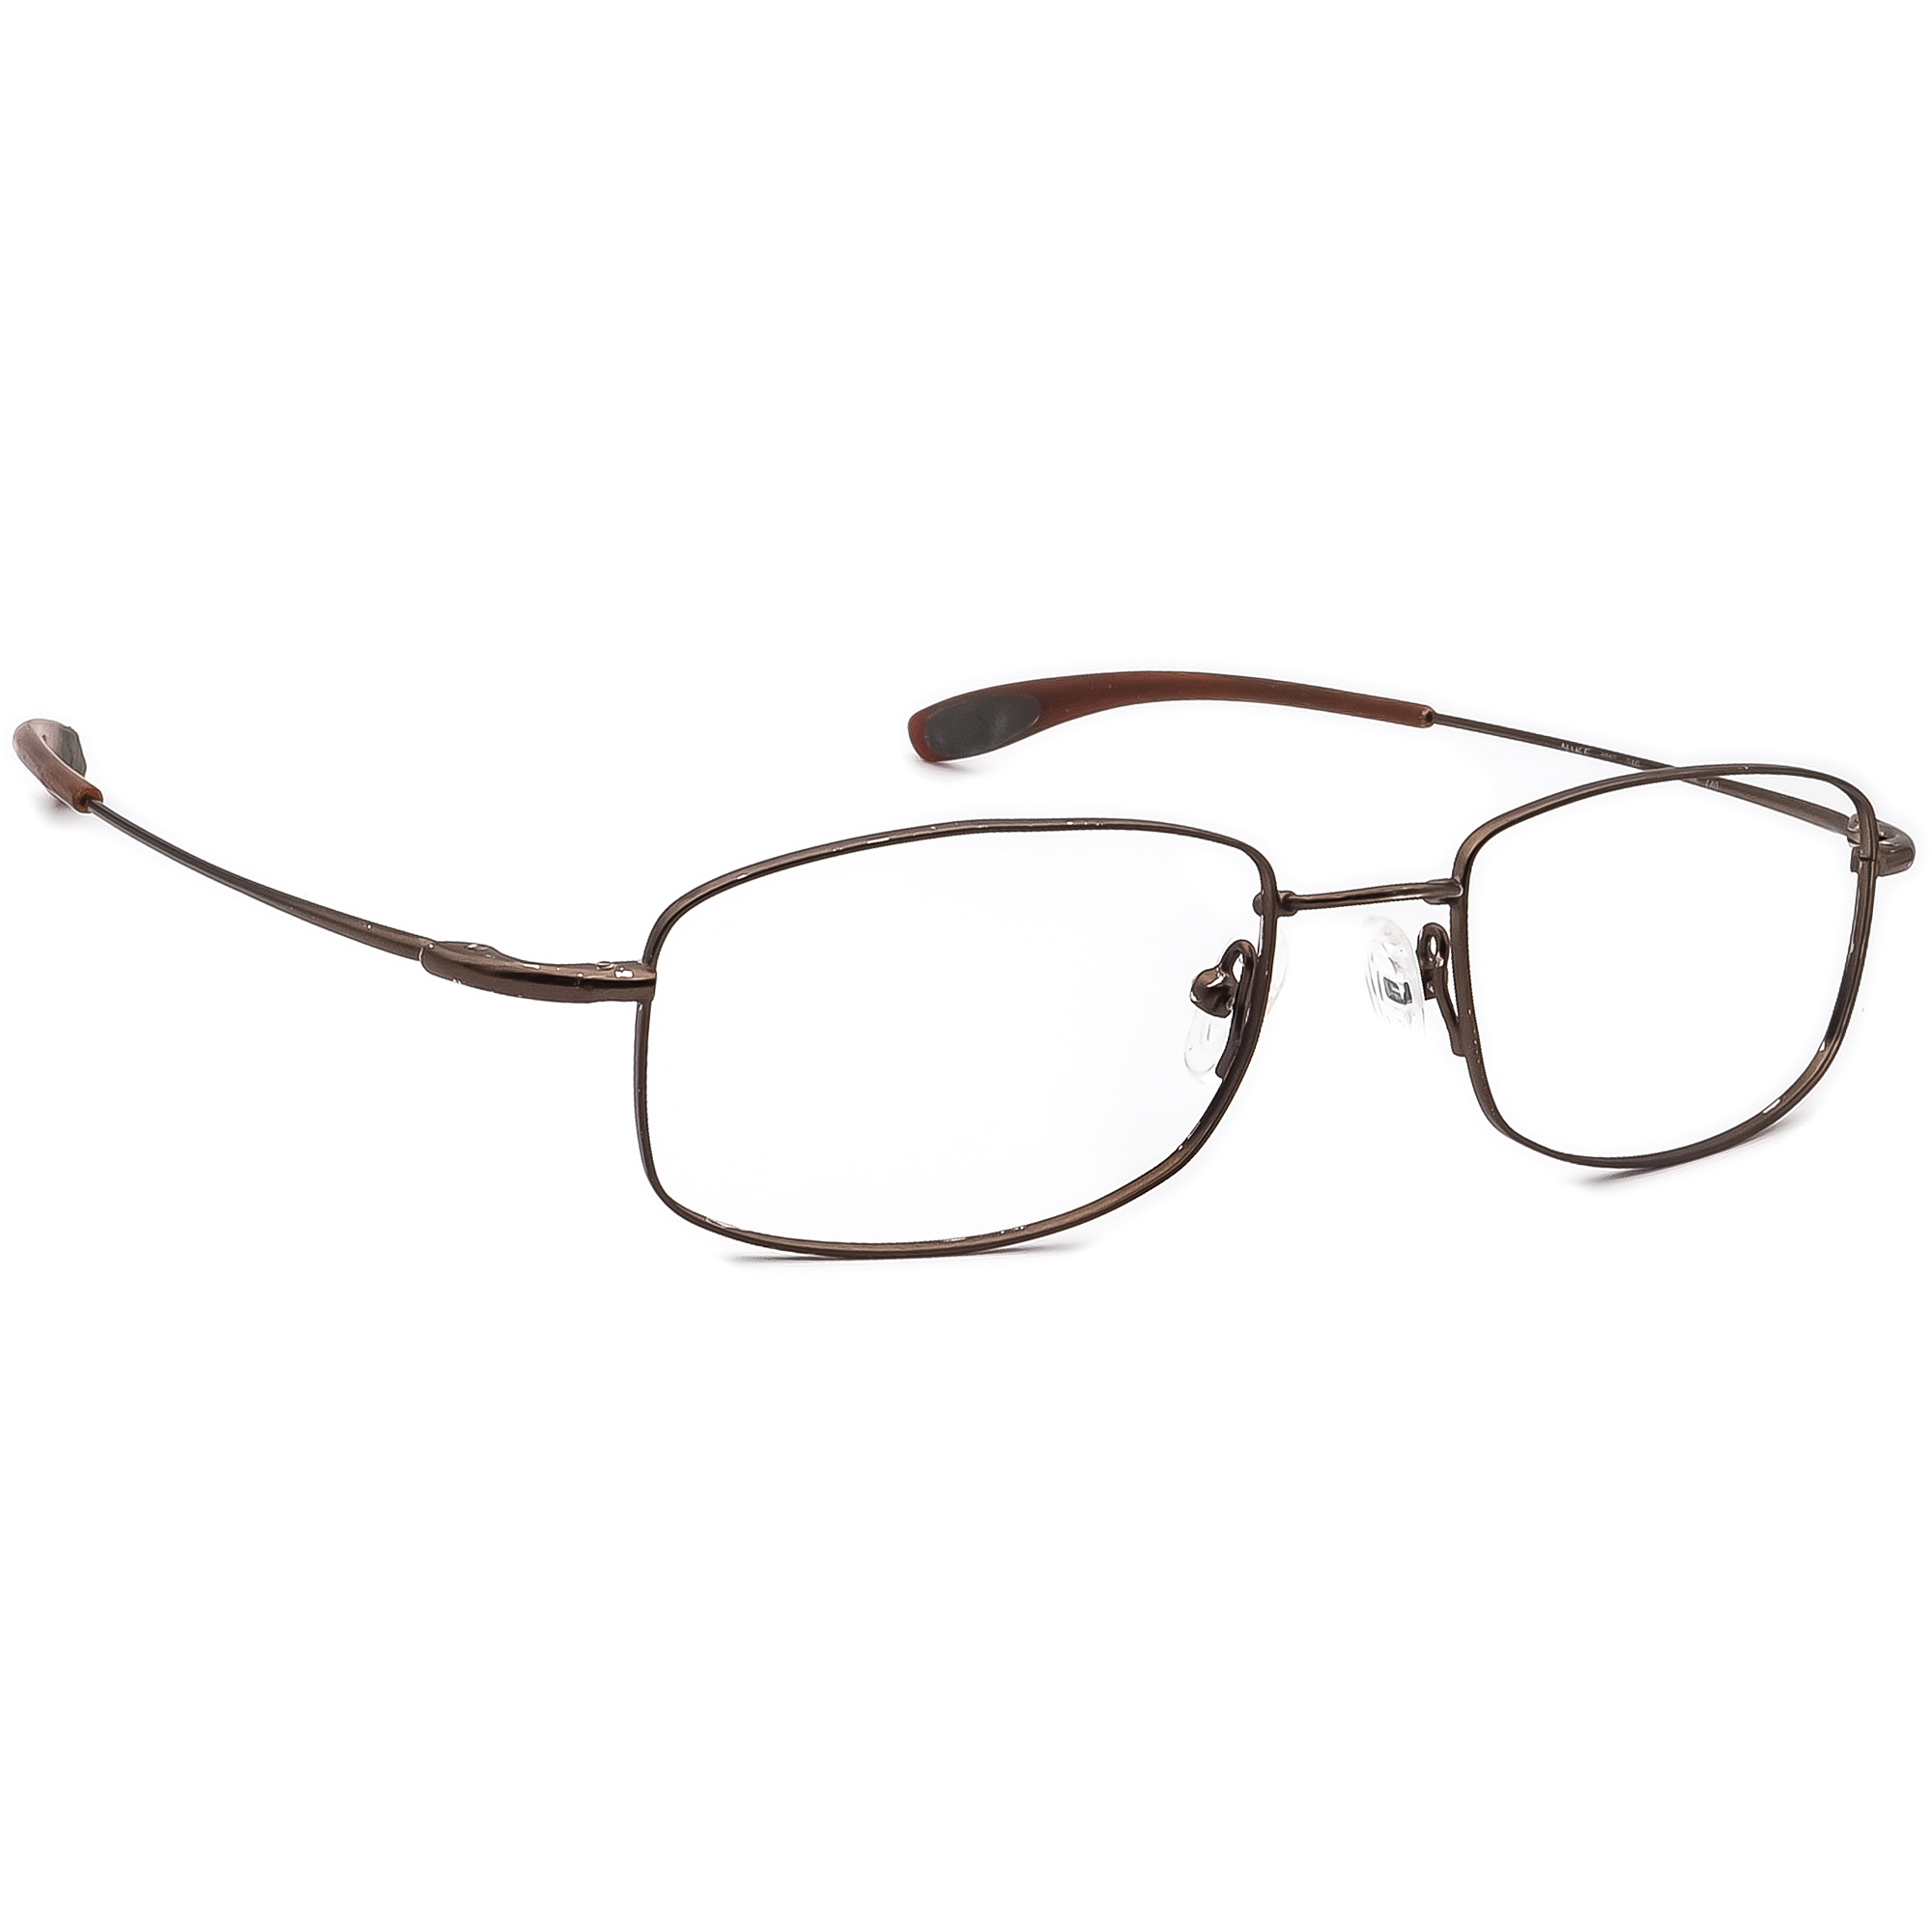 Nike 1012 310 Flexon Eyeglasses